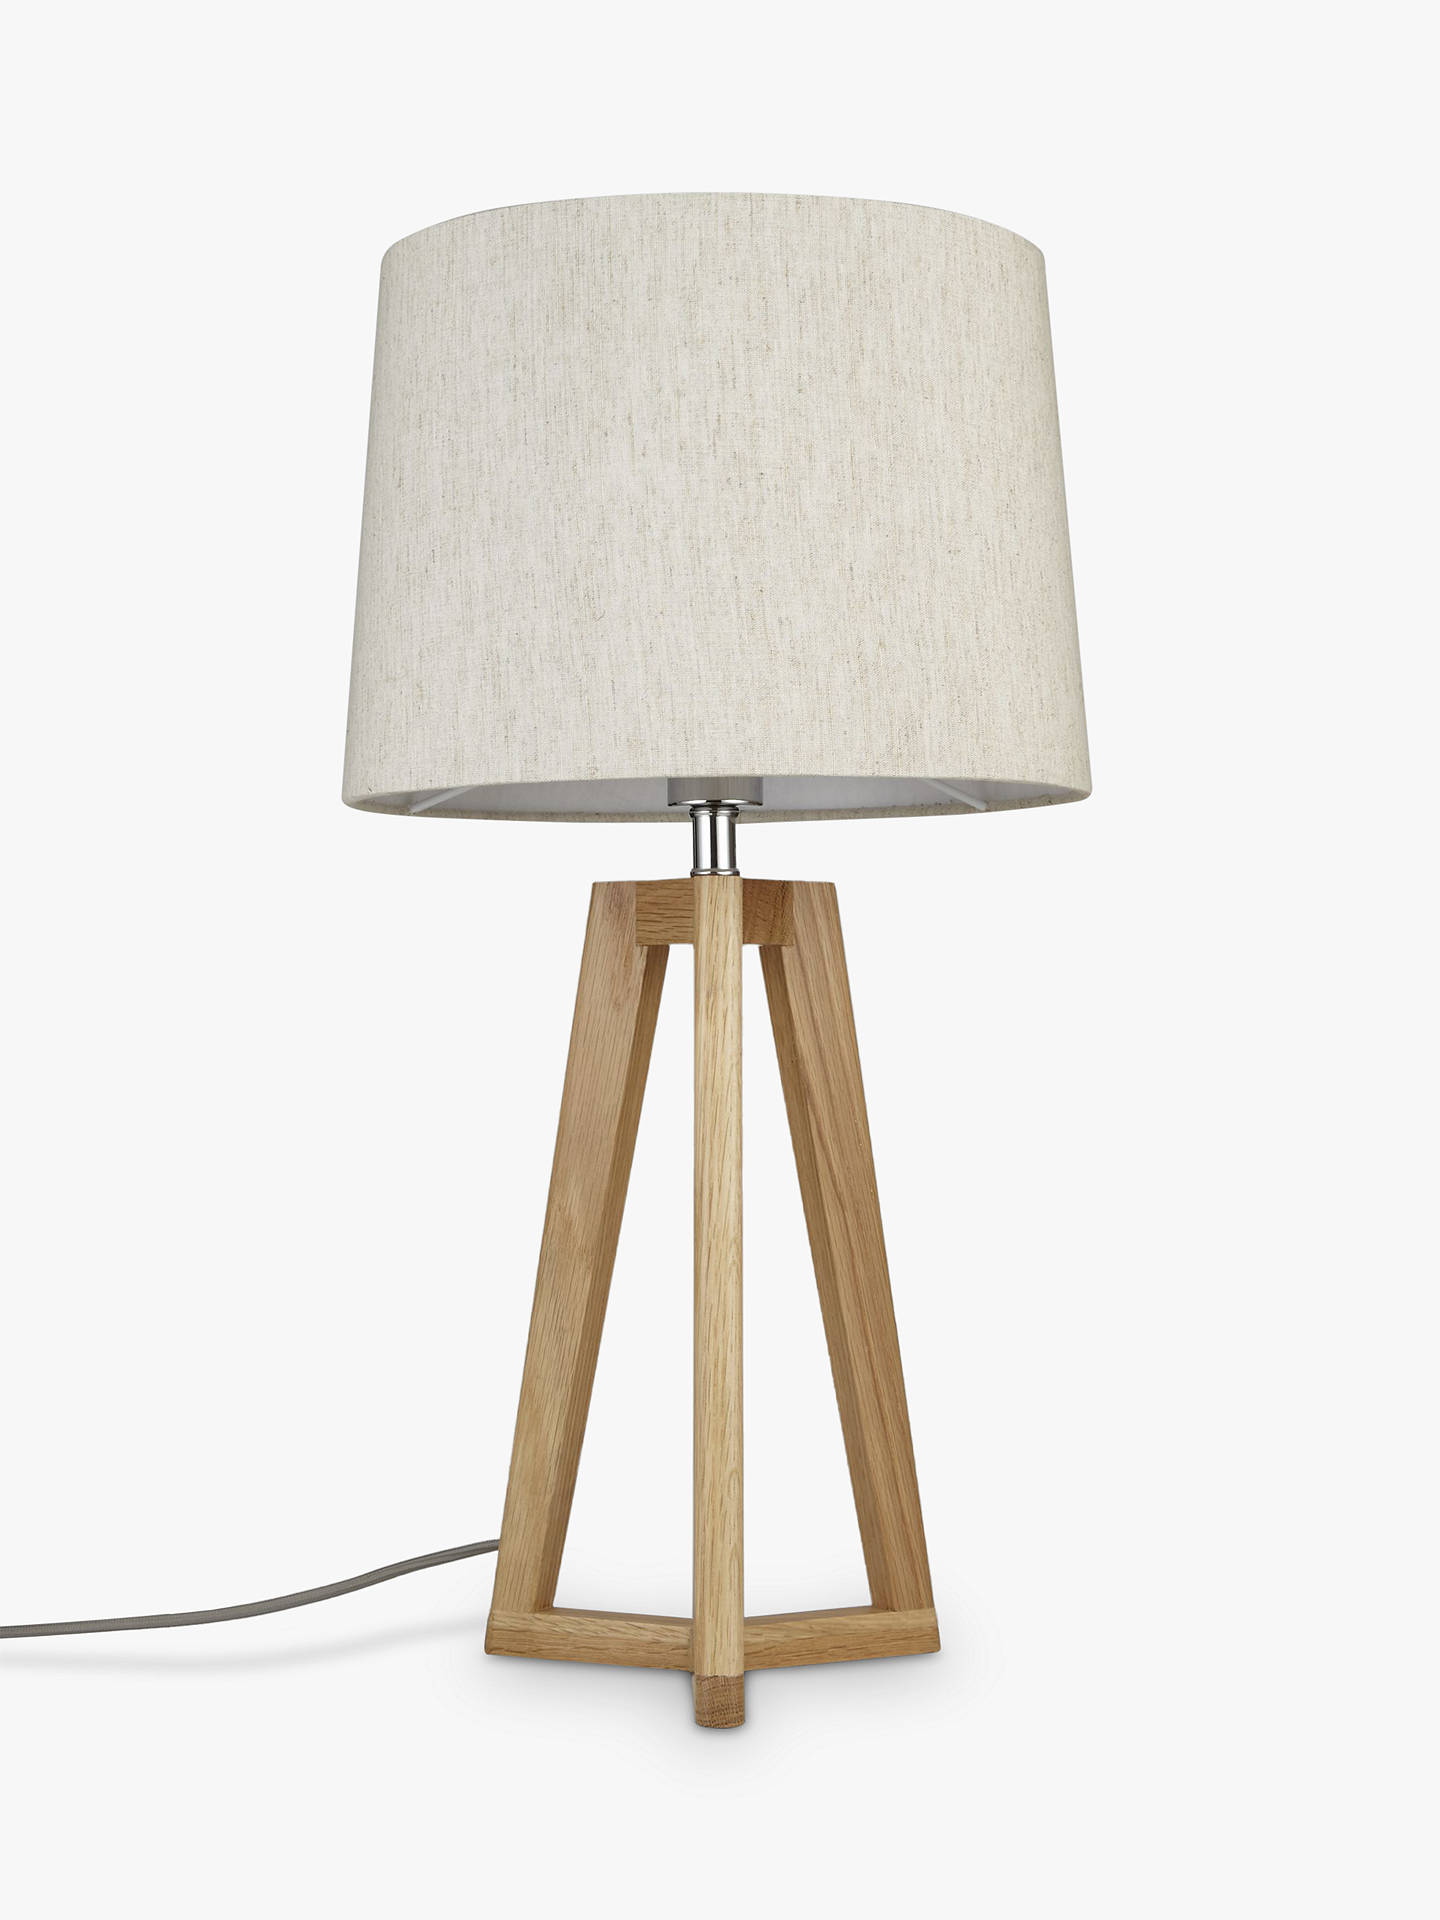 BuyJohn Lewis & Partners Brace Table Lamp, FSC-Certified (Oak) Online at johnlewis.com